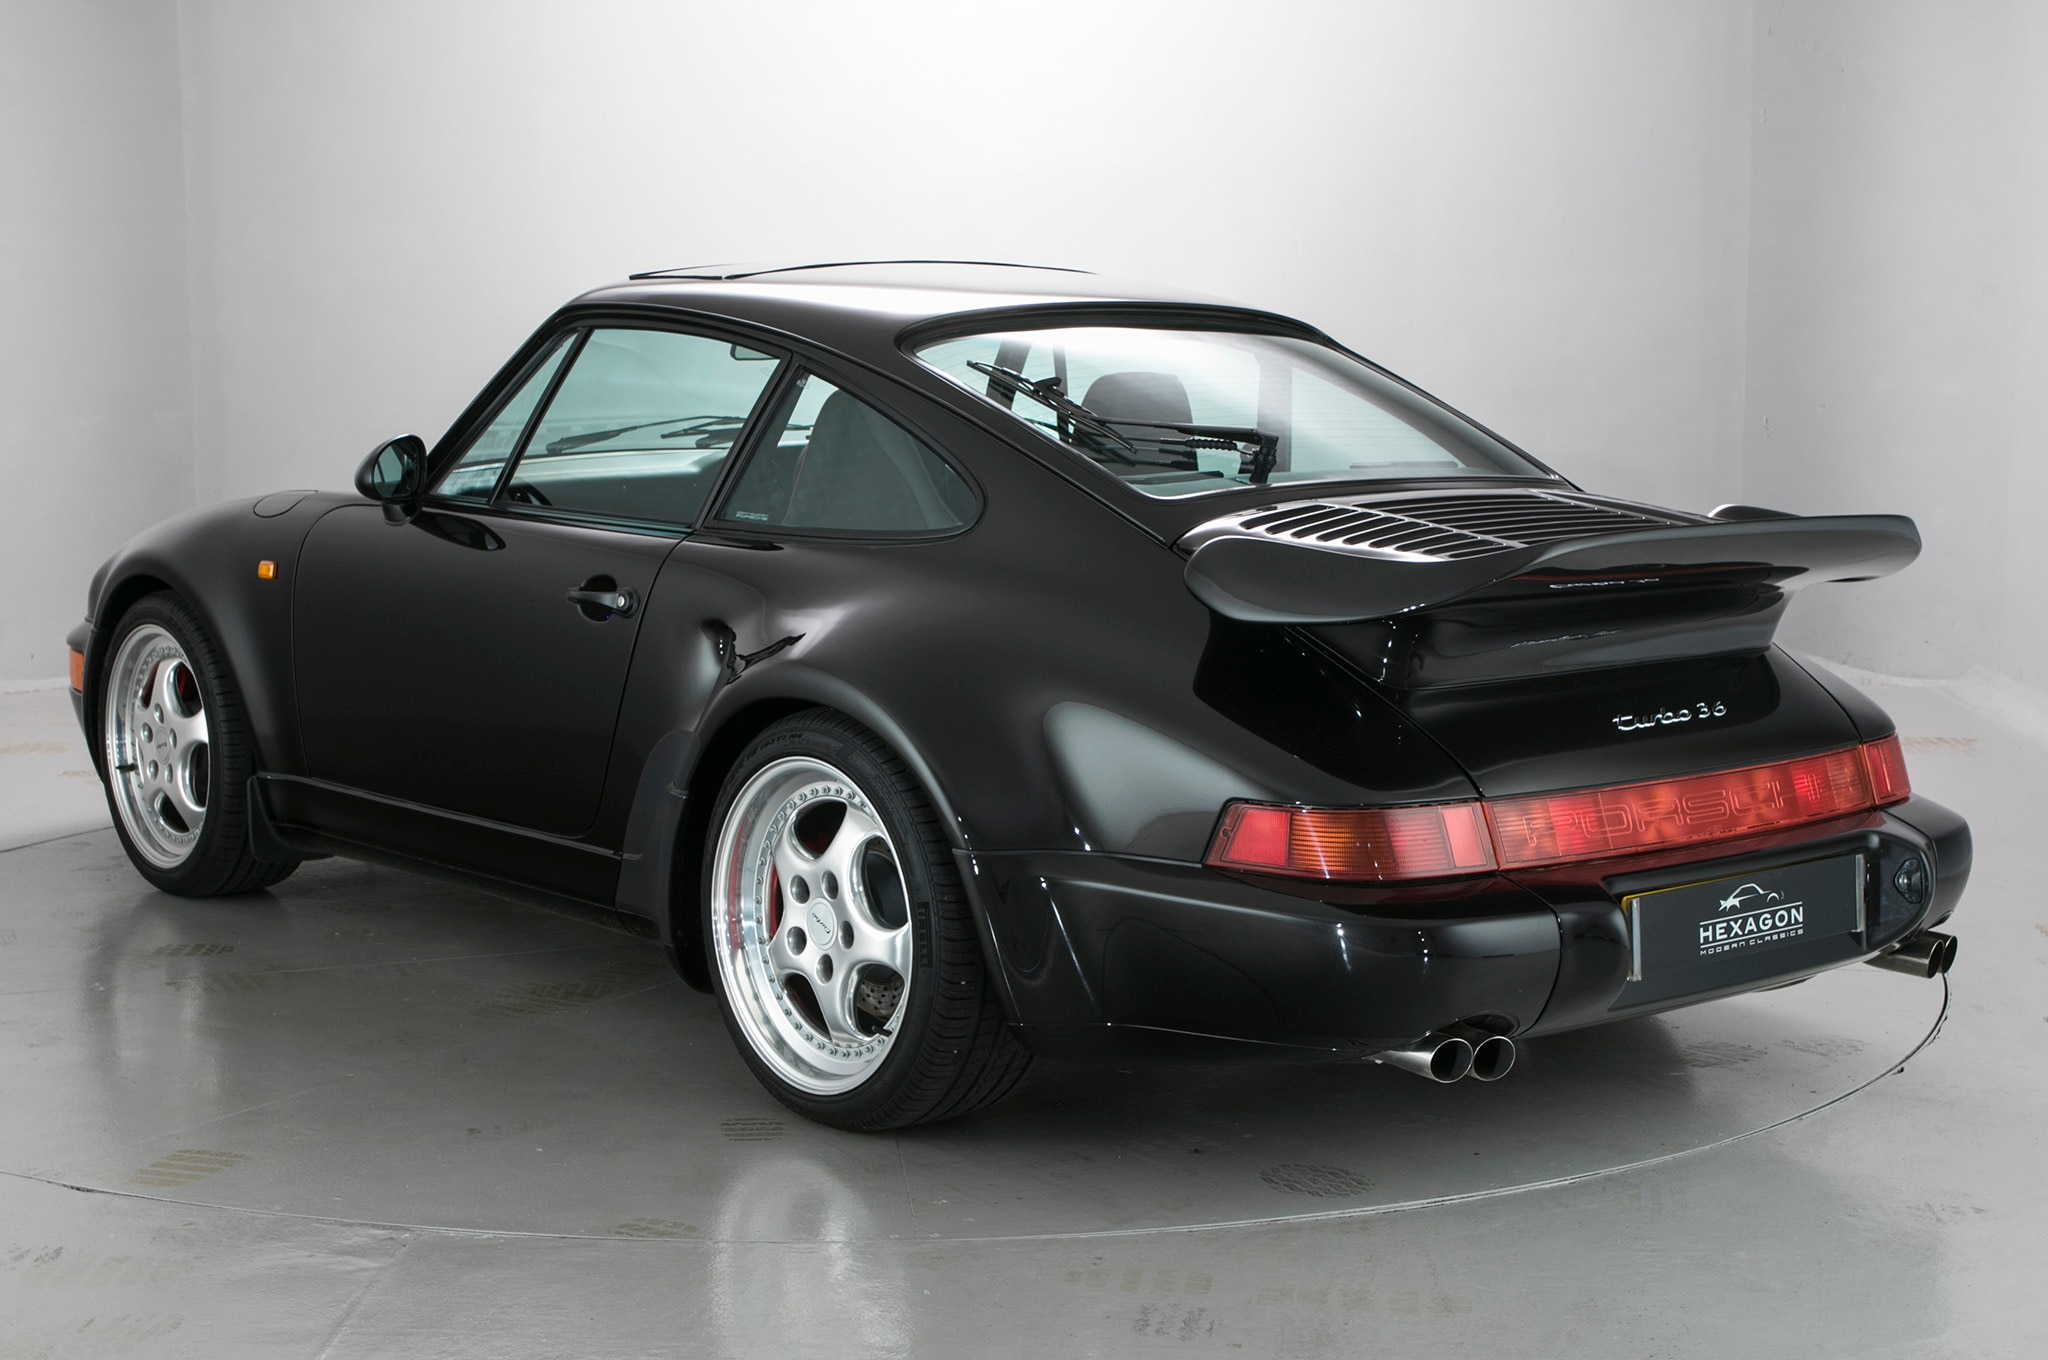 rare 1994 porsche 964 911 turbo 3 6 s flachbau up for sale automobile. Black Bedroom Furniture Sets. Home Design Ideas